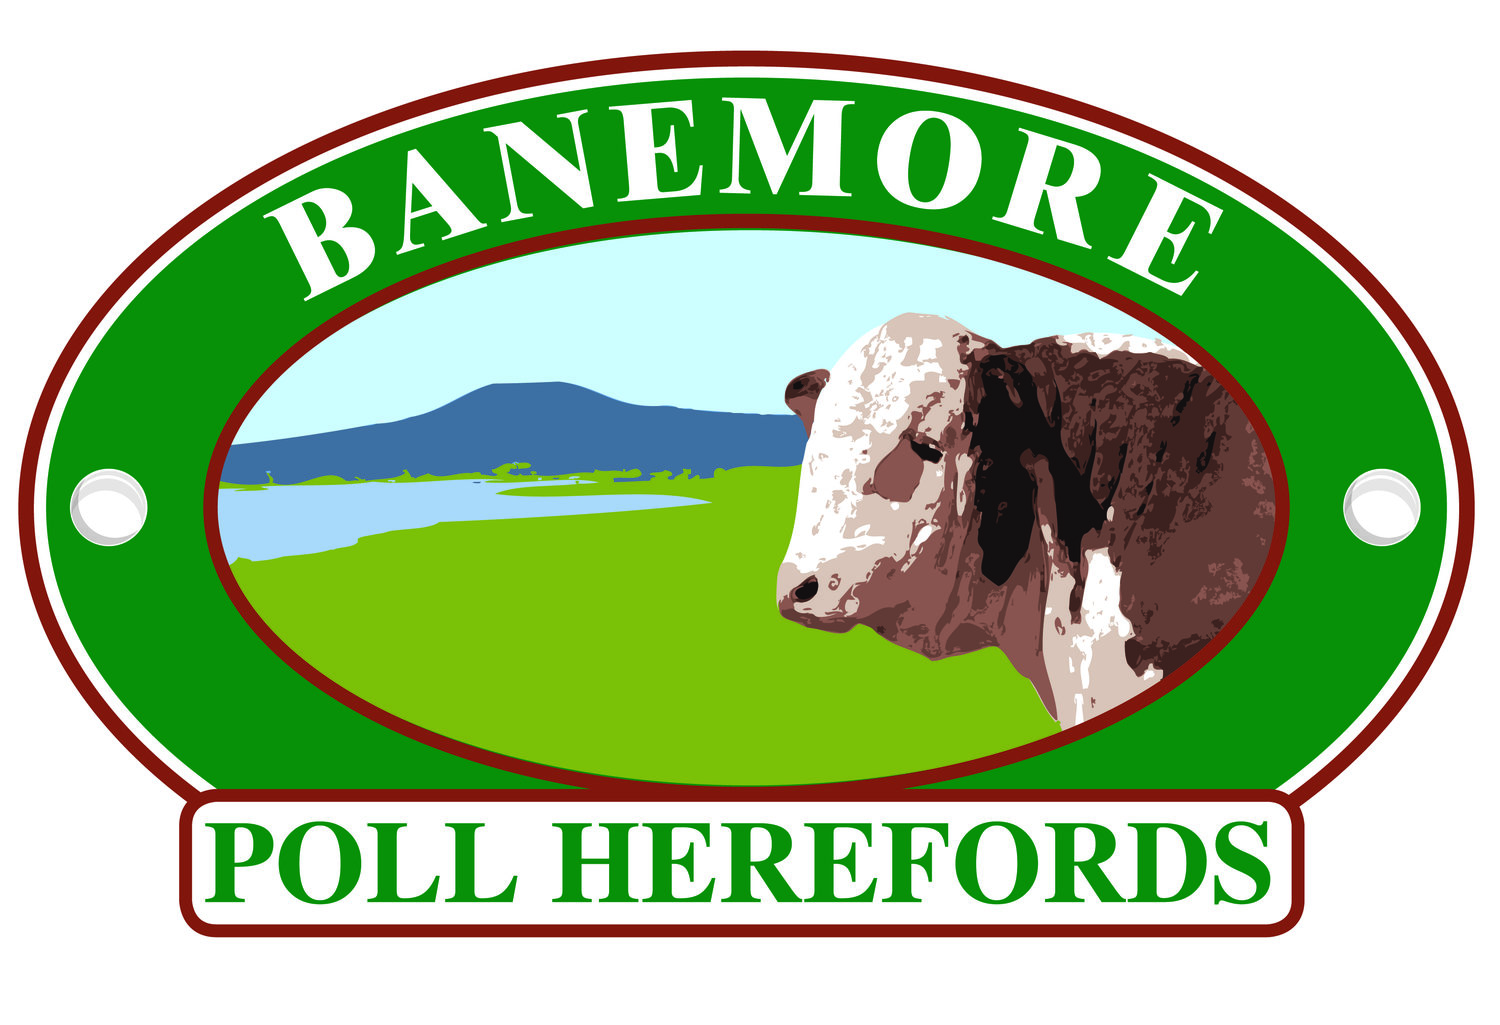 Banemore Herefords